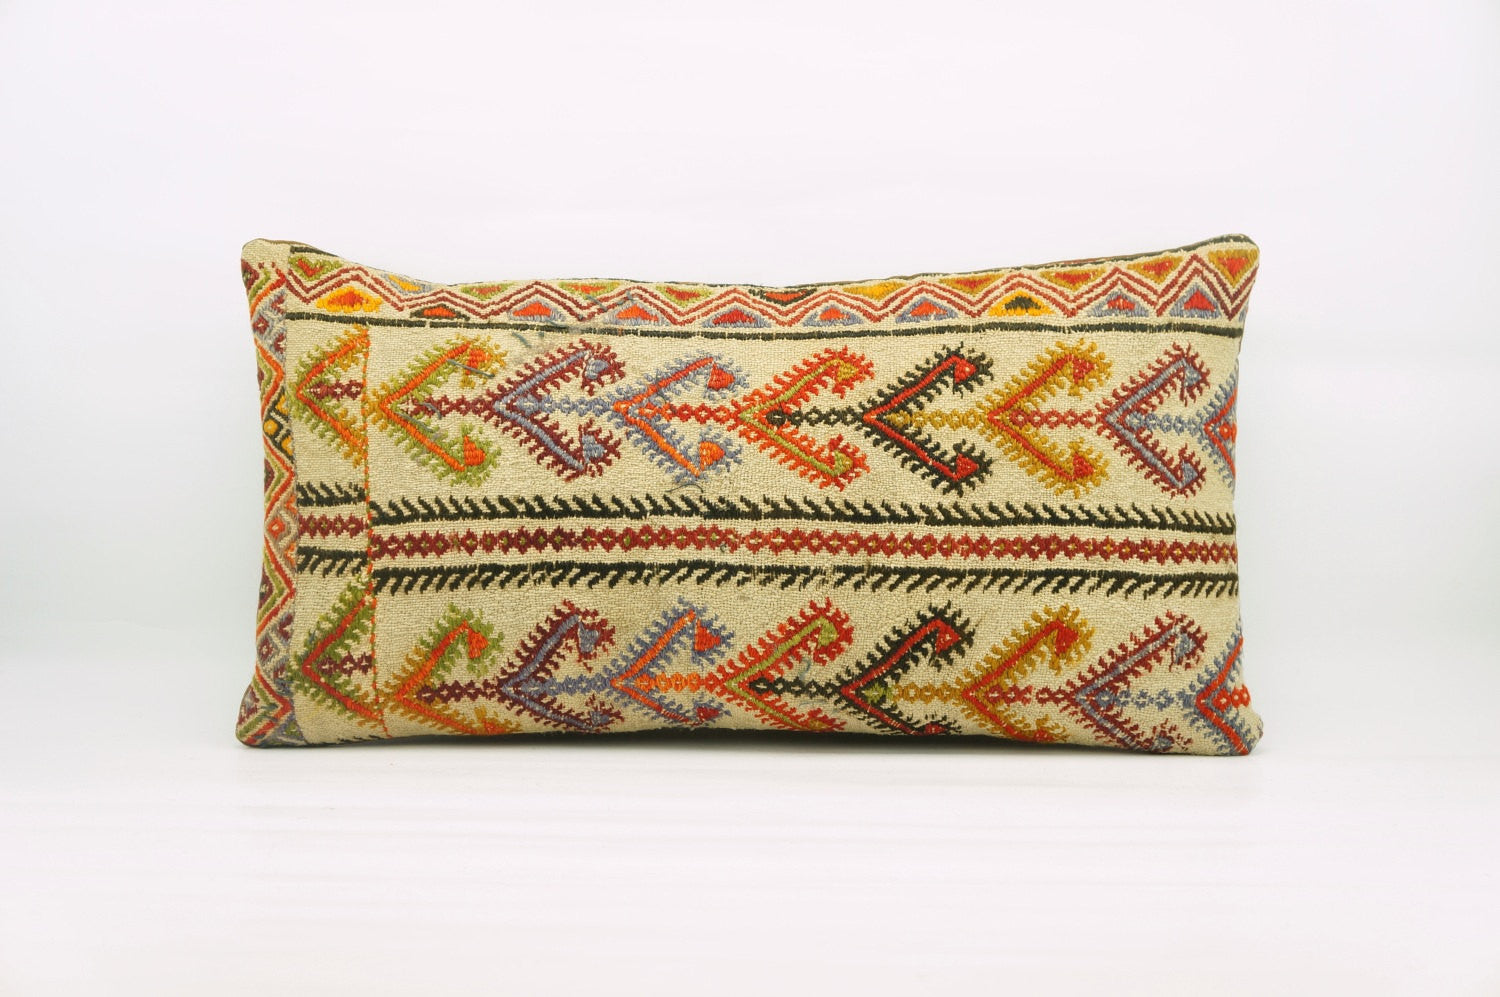 12x24  Geometric kilim pillow sham, Tribal cushion cover, Handwoven pillowcase , mid century decor multi colour 1216